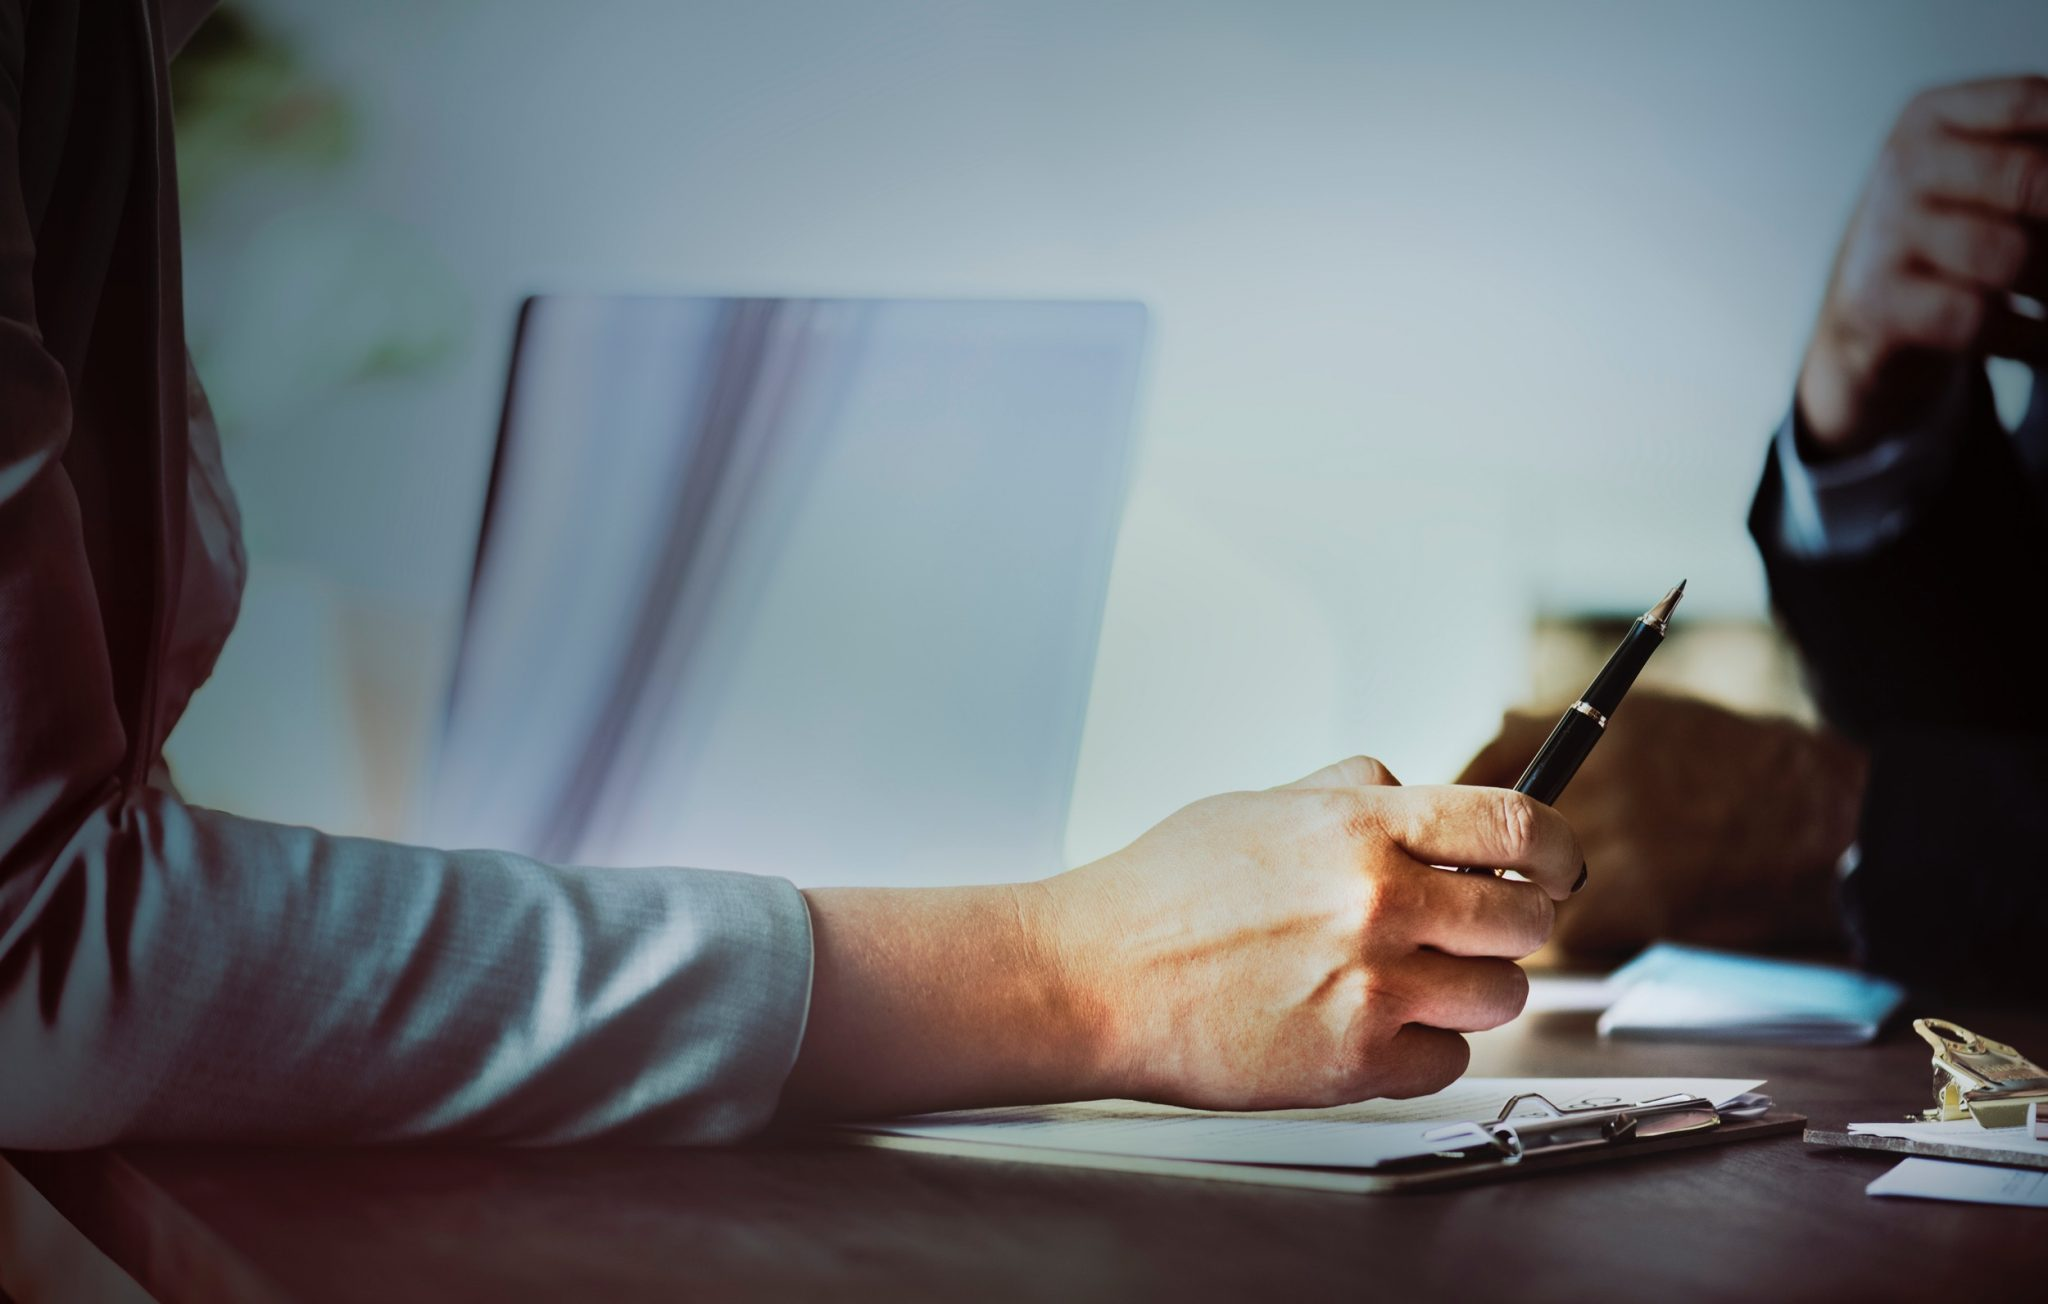 What if the Deceased lacked the ability to make a Will? Testamentary Incapacity